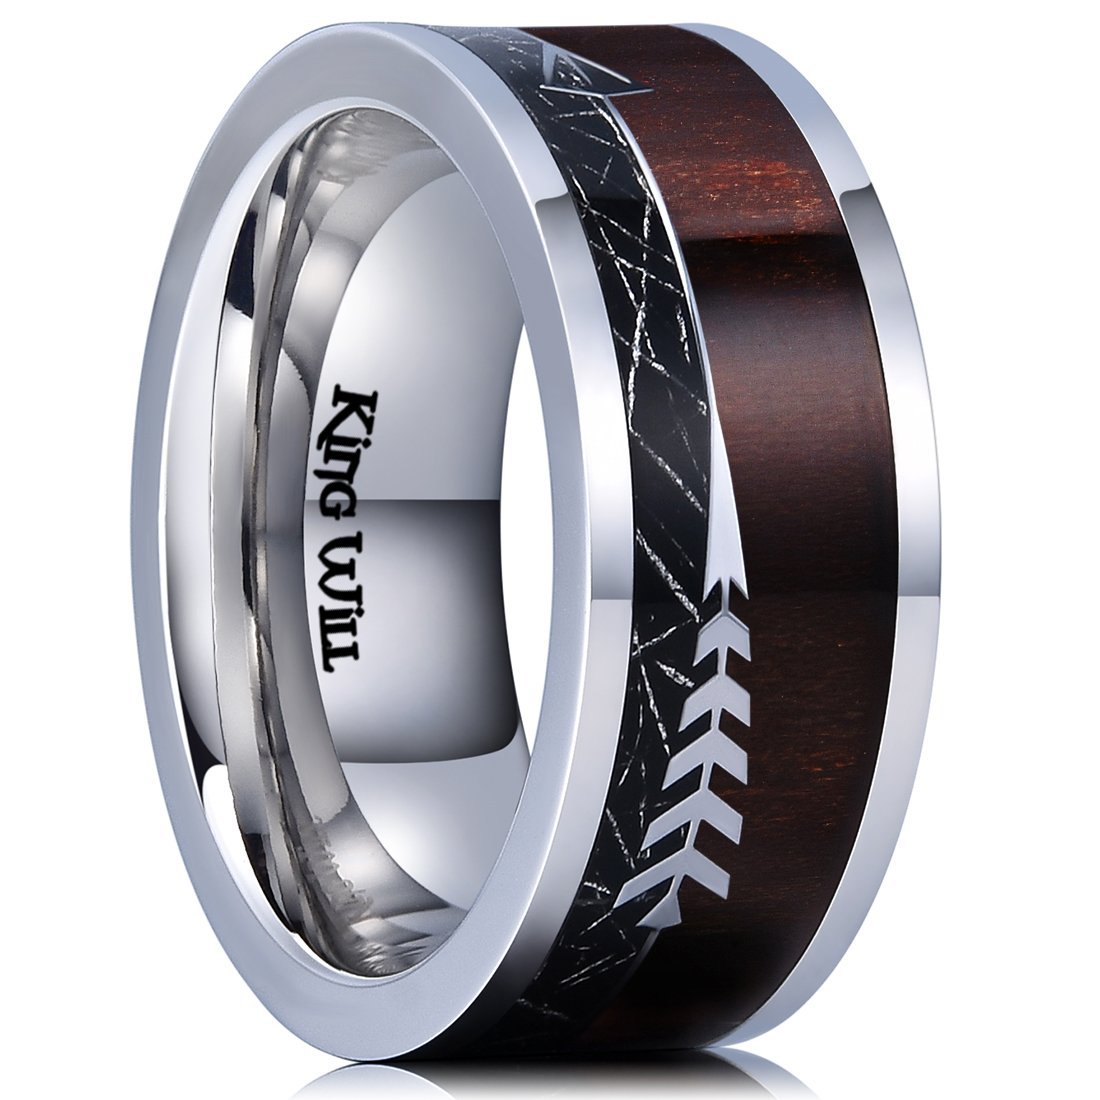 King Will NATURE 8mm Real Wood Inlay Titanium Wedding Ring Imitated Meteorite Comfort Fit 11